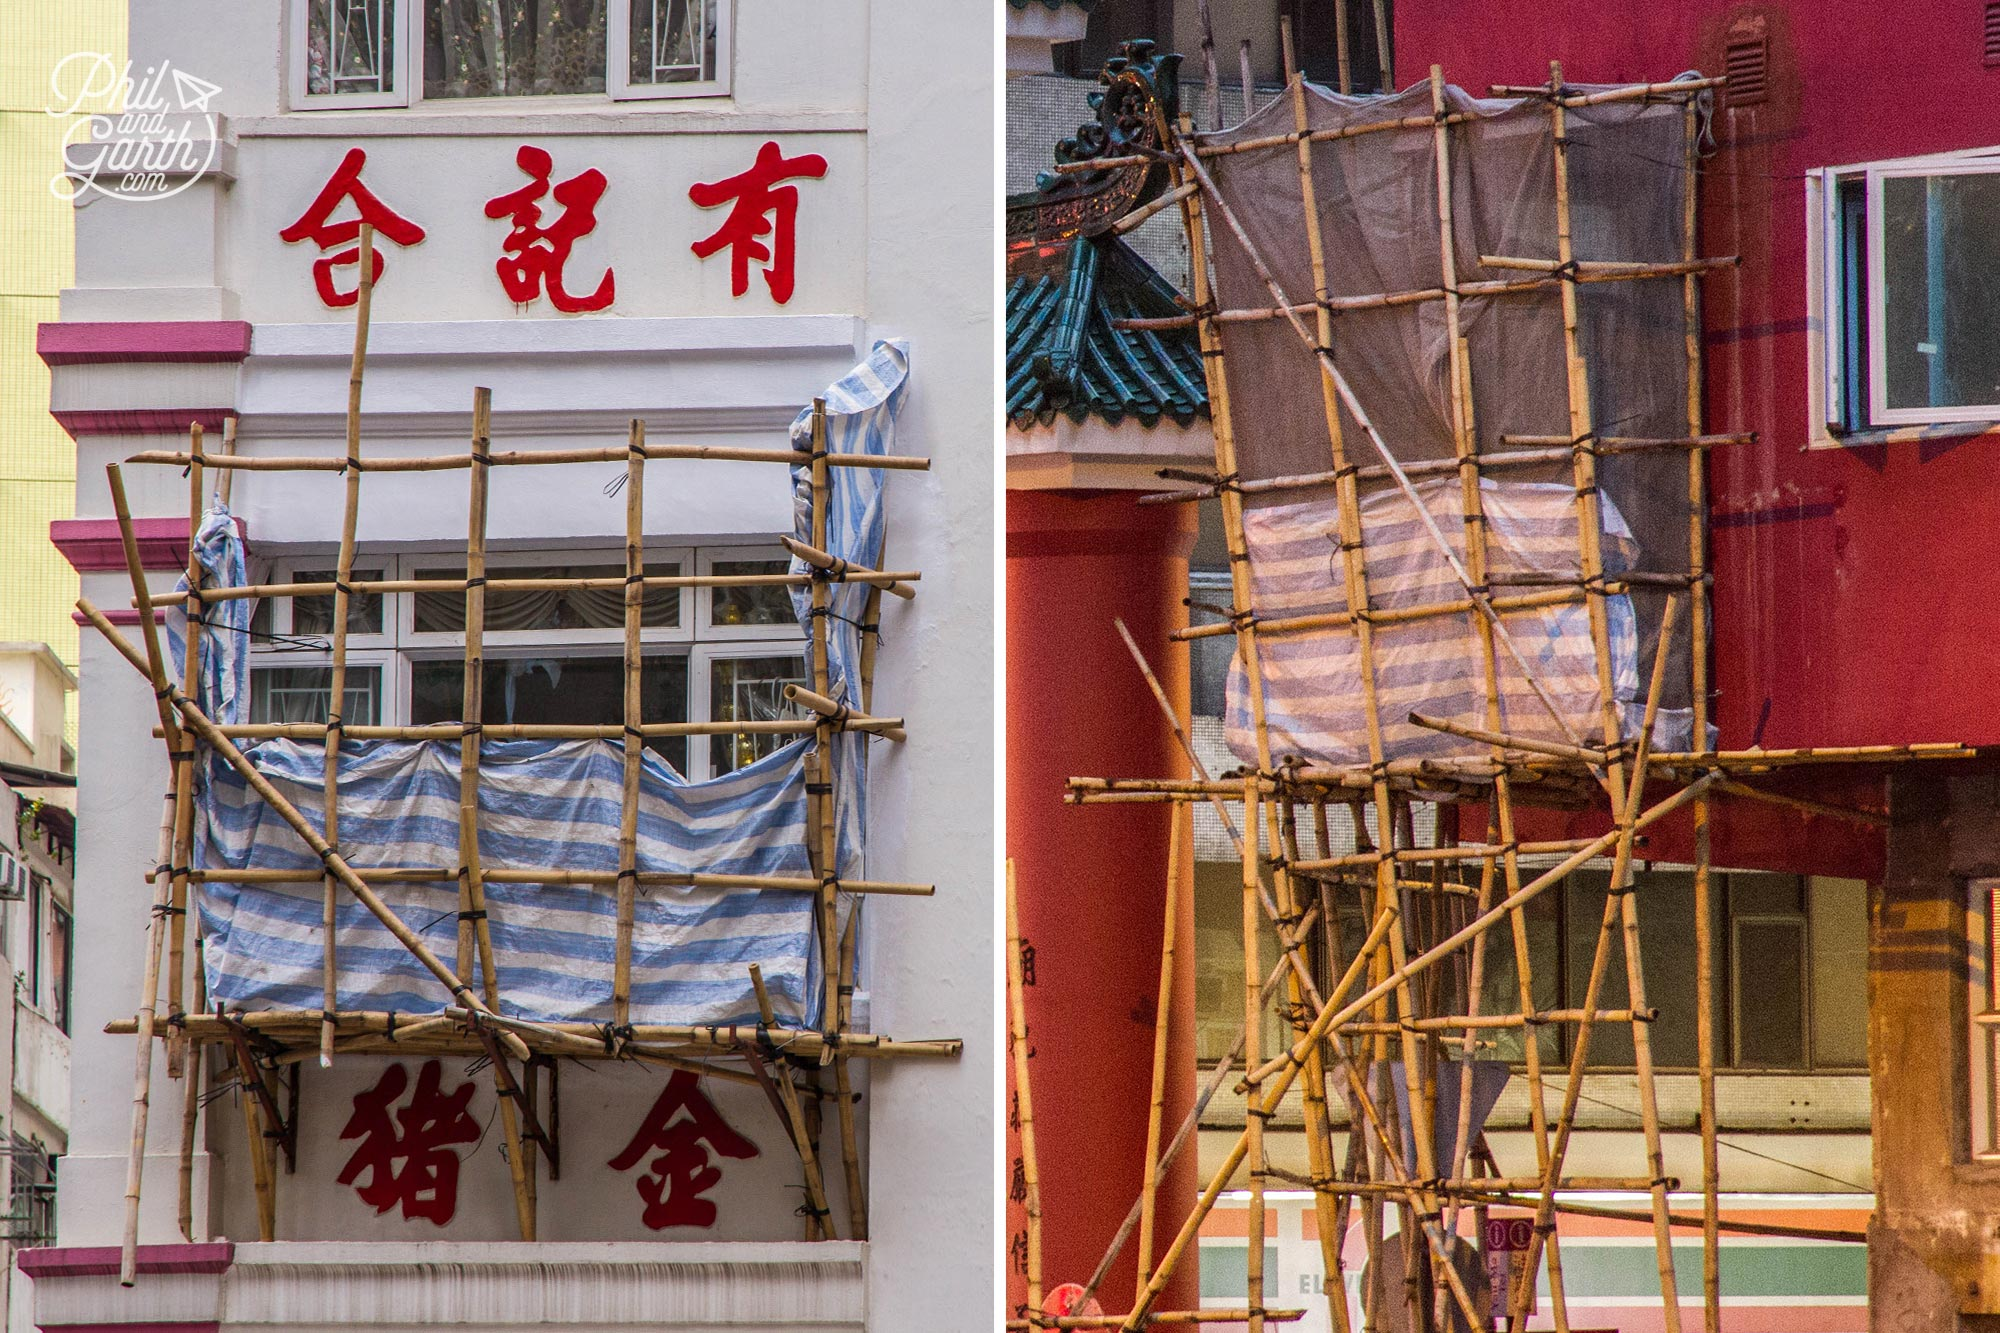 Check out the bamboo scaffolding!